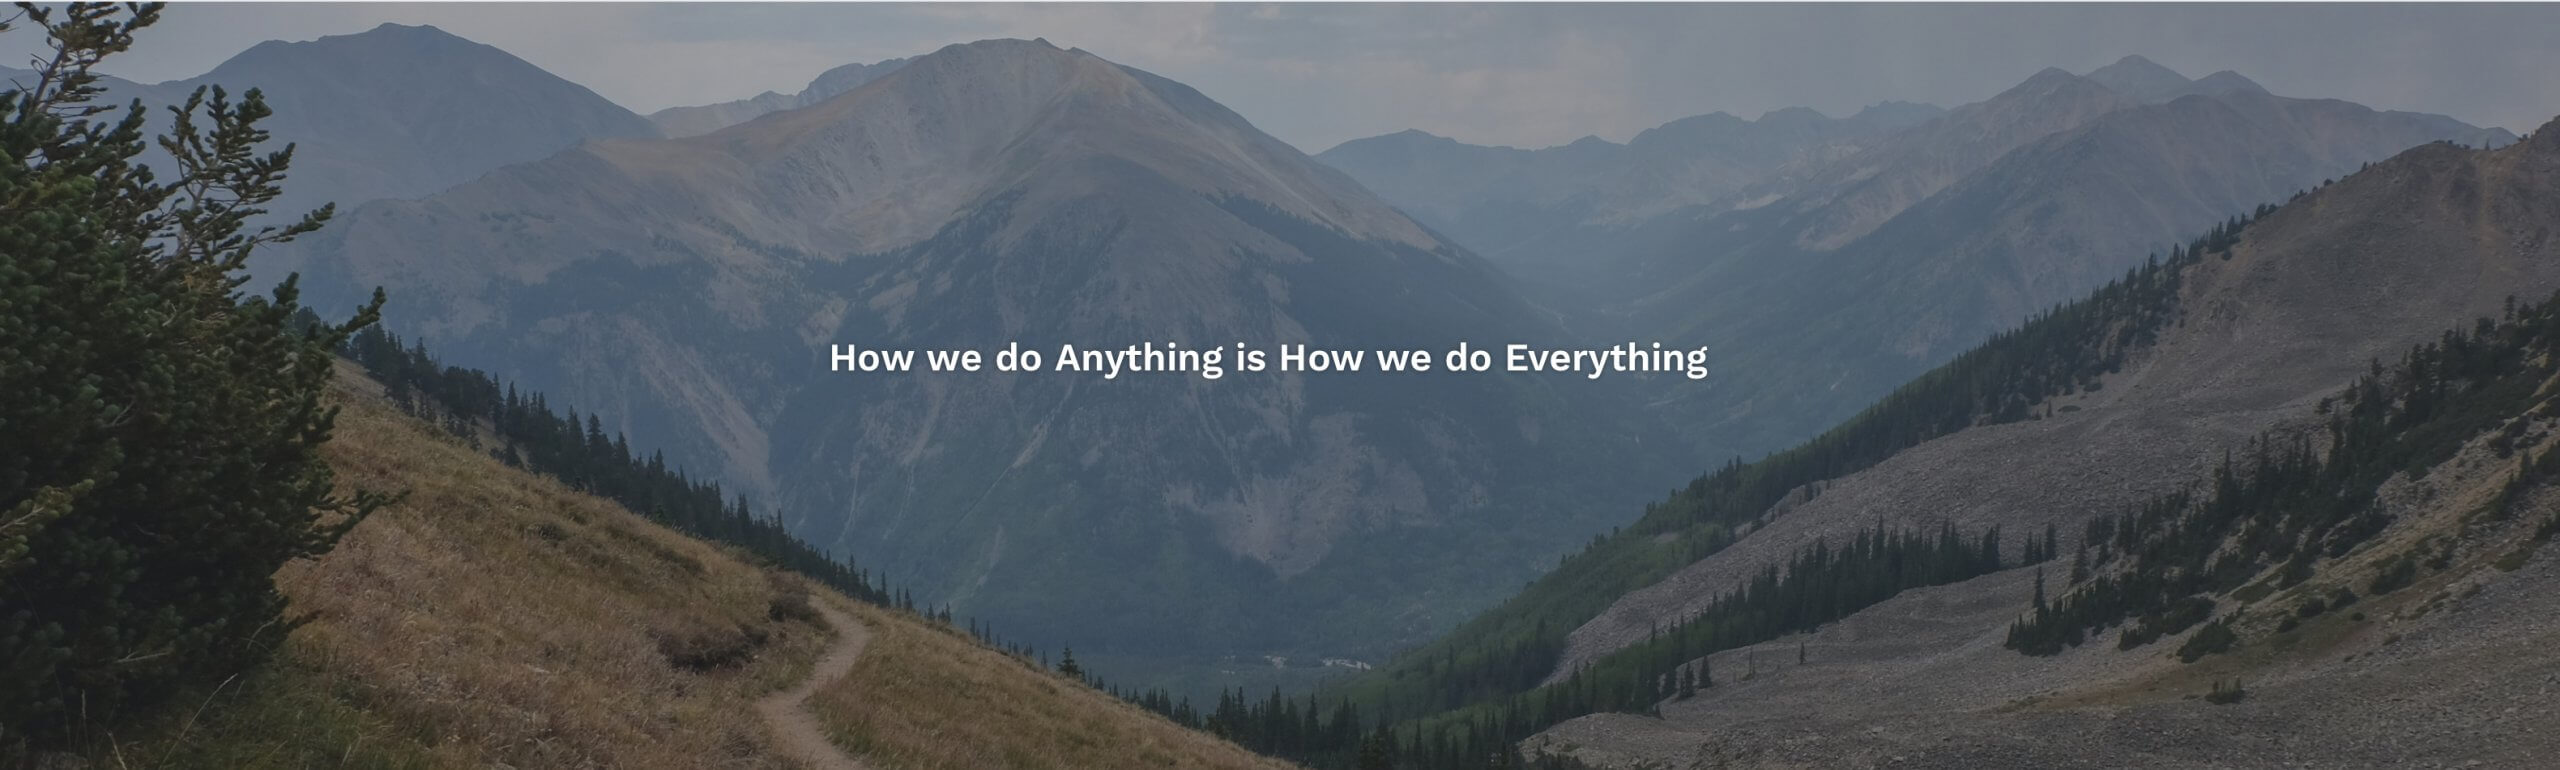 How we do anything is how we do everything with mountain backgrounds for digital programs